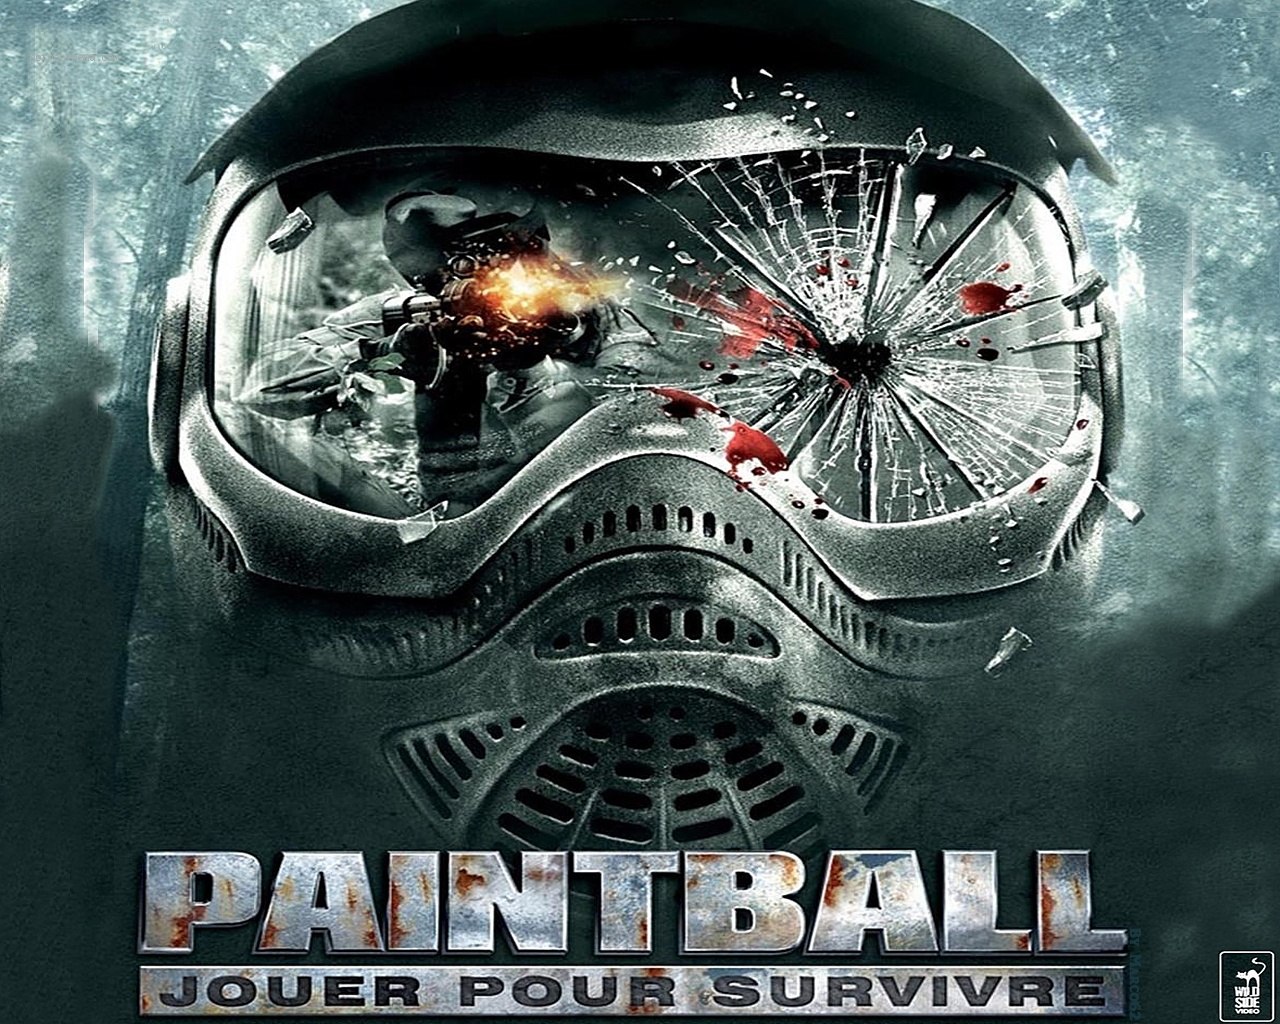 1000x667px Paintball Wallpaper | #454704